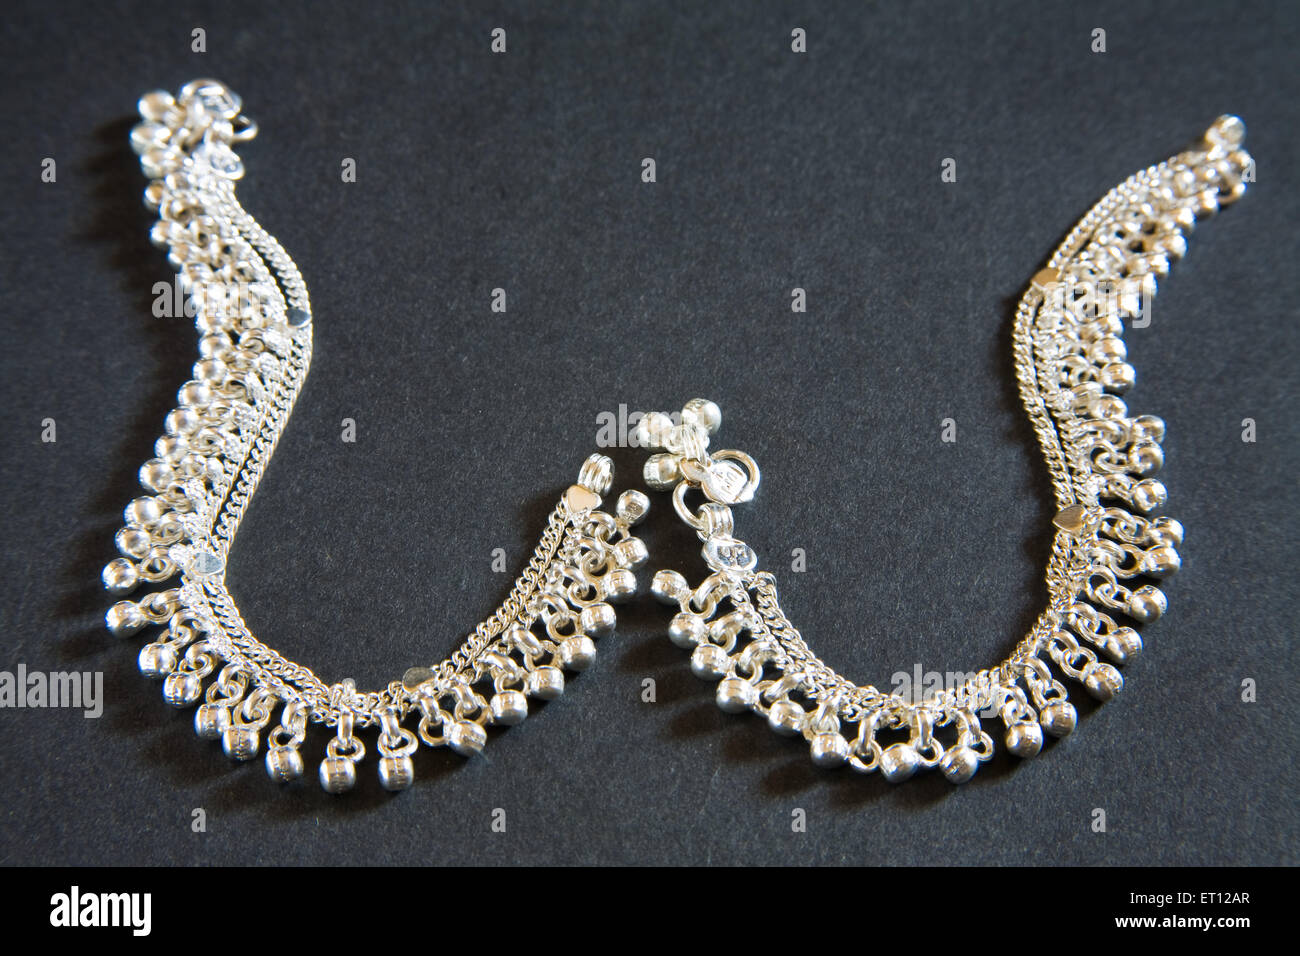 Concept ; silver anklets pair on black background 12 March 2010 - Stock Image